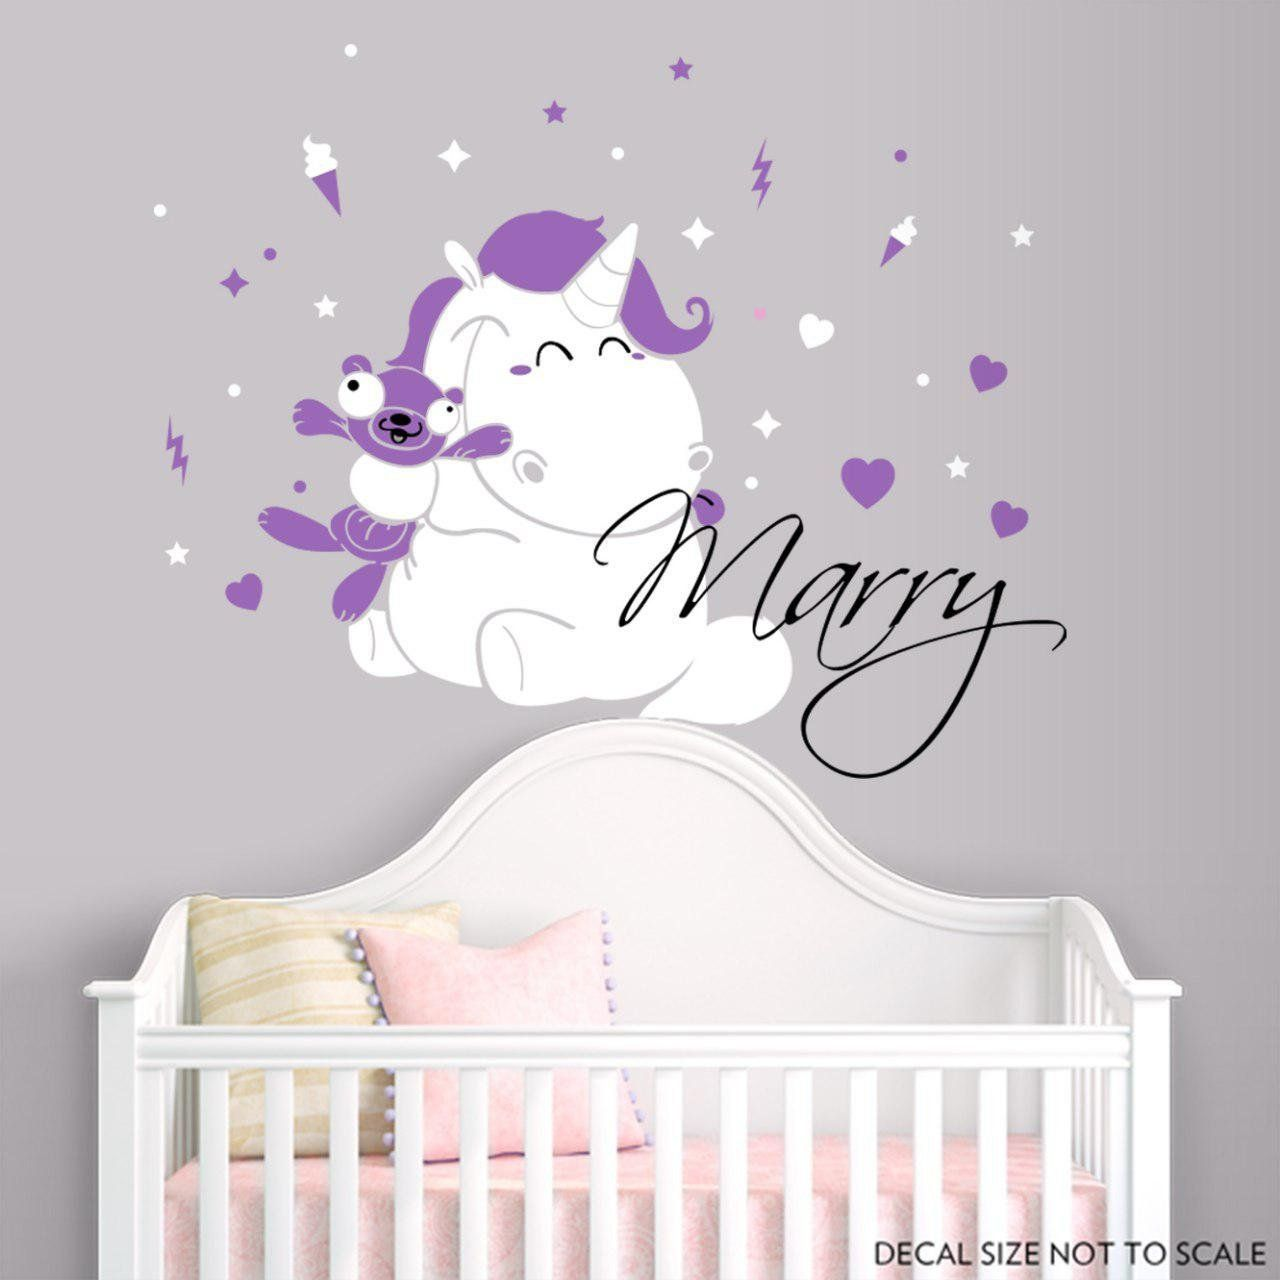 Personalized Name Wall Decal Unicorn Nursery